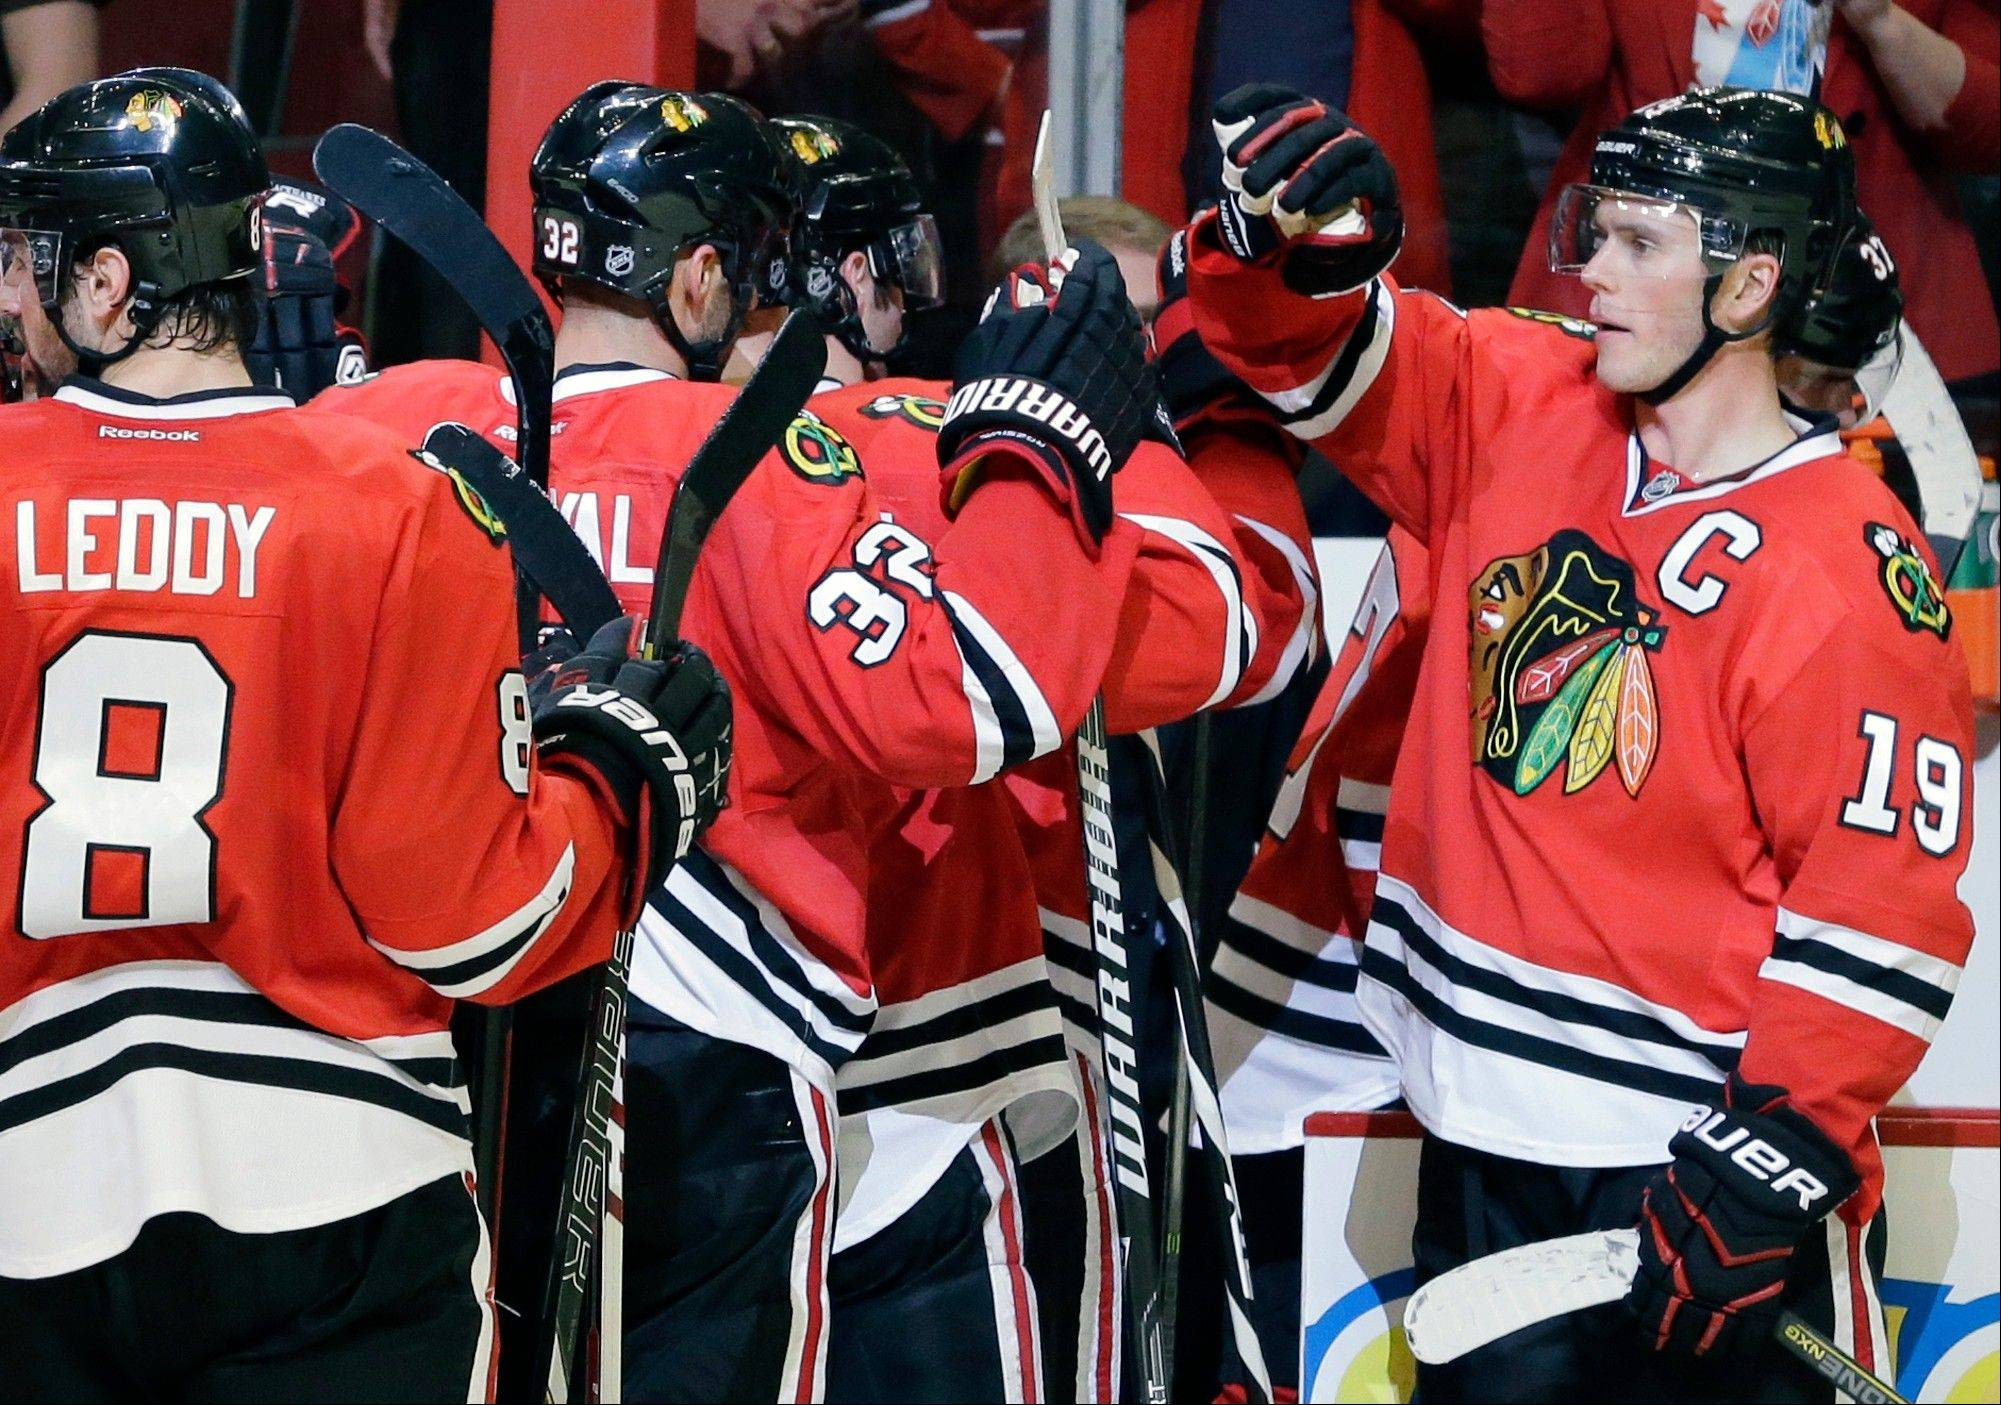 Chicago Blackhawks' Jonathan Toews (19), right, celebrates with teammates after the Blackhawks defeated the Winnipeg Jets 4-1 in an NHL hockey game in Chicago, Wednesday, Nov. 6, 2013.